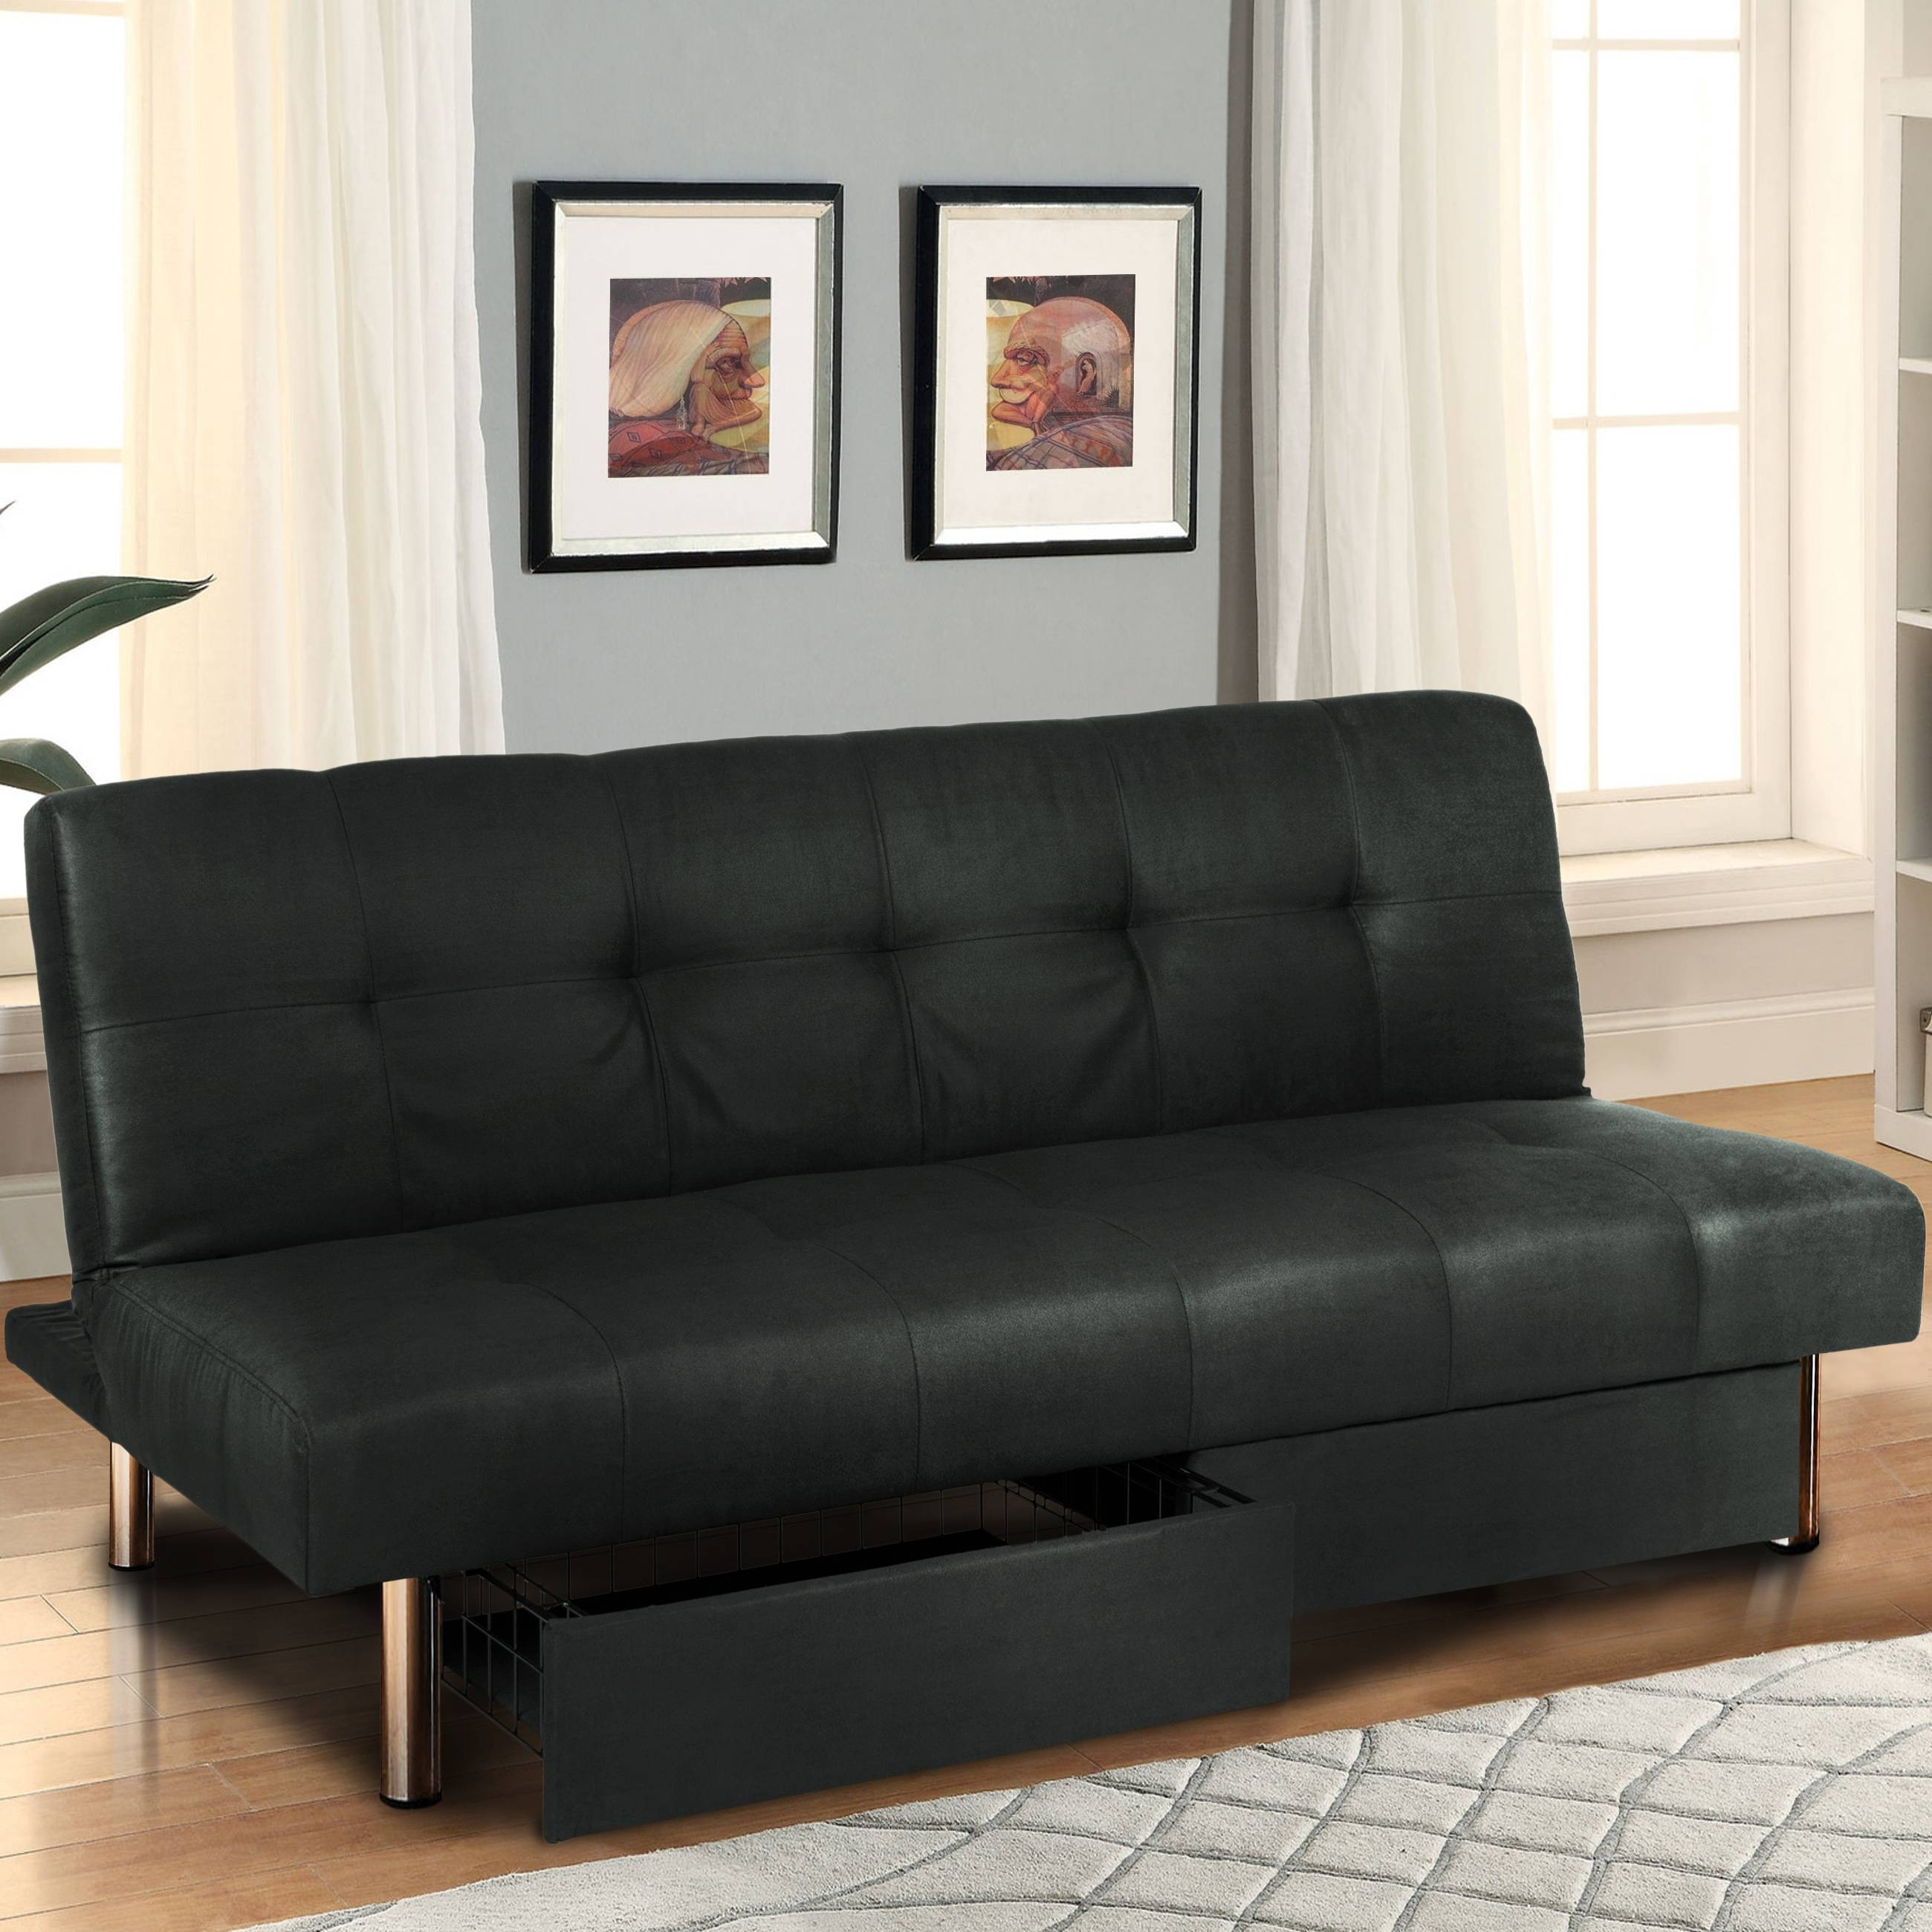 Best Choice Products Modern Entertainment Futon Sofa Bed Fold Up Intended For Futon Couch Beds (View 9 of 15)